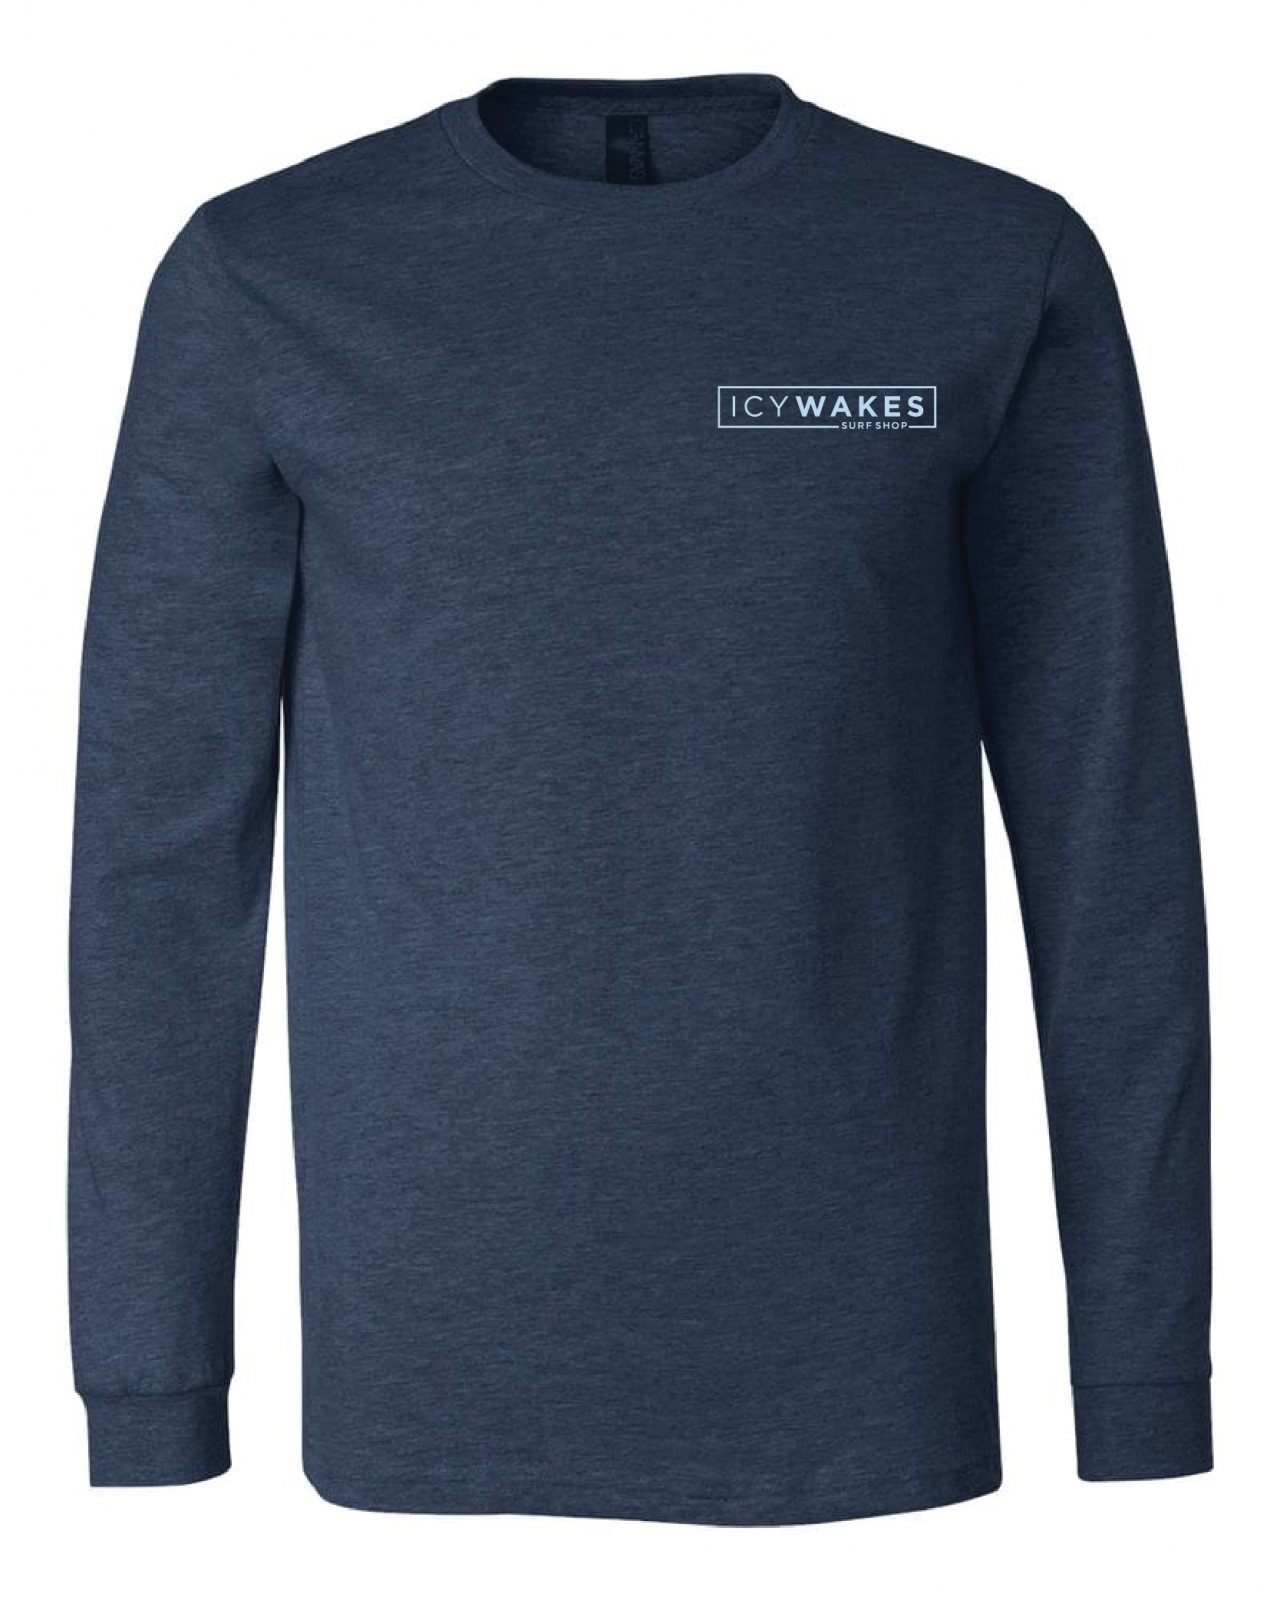 ICYWAKES LONG SLEEVE SHOP TEE